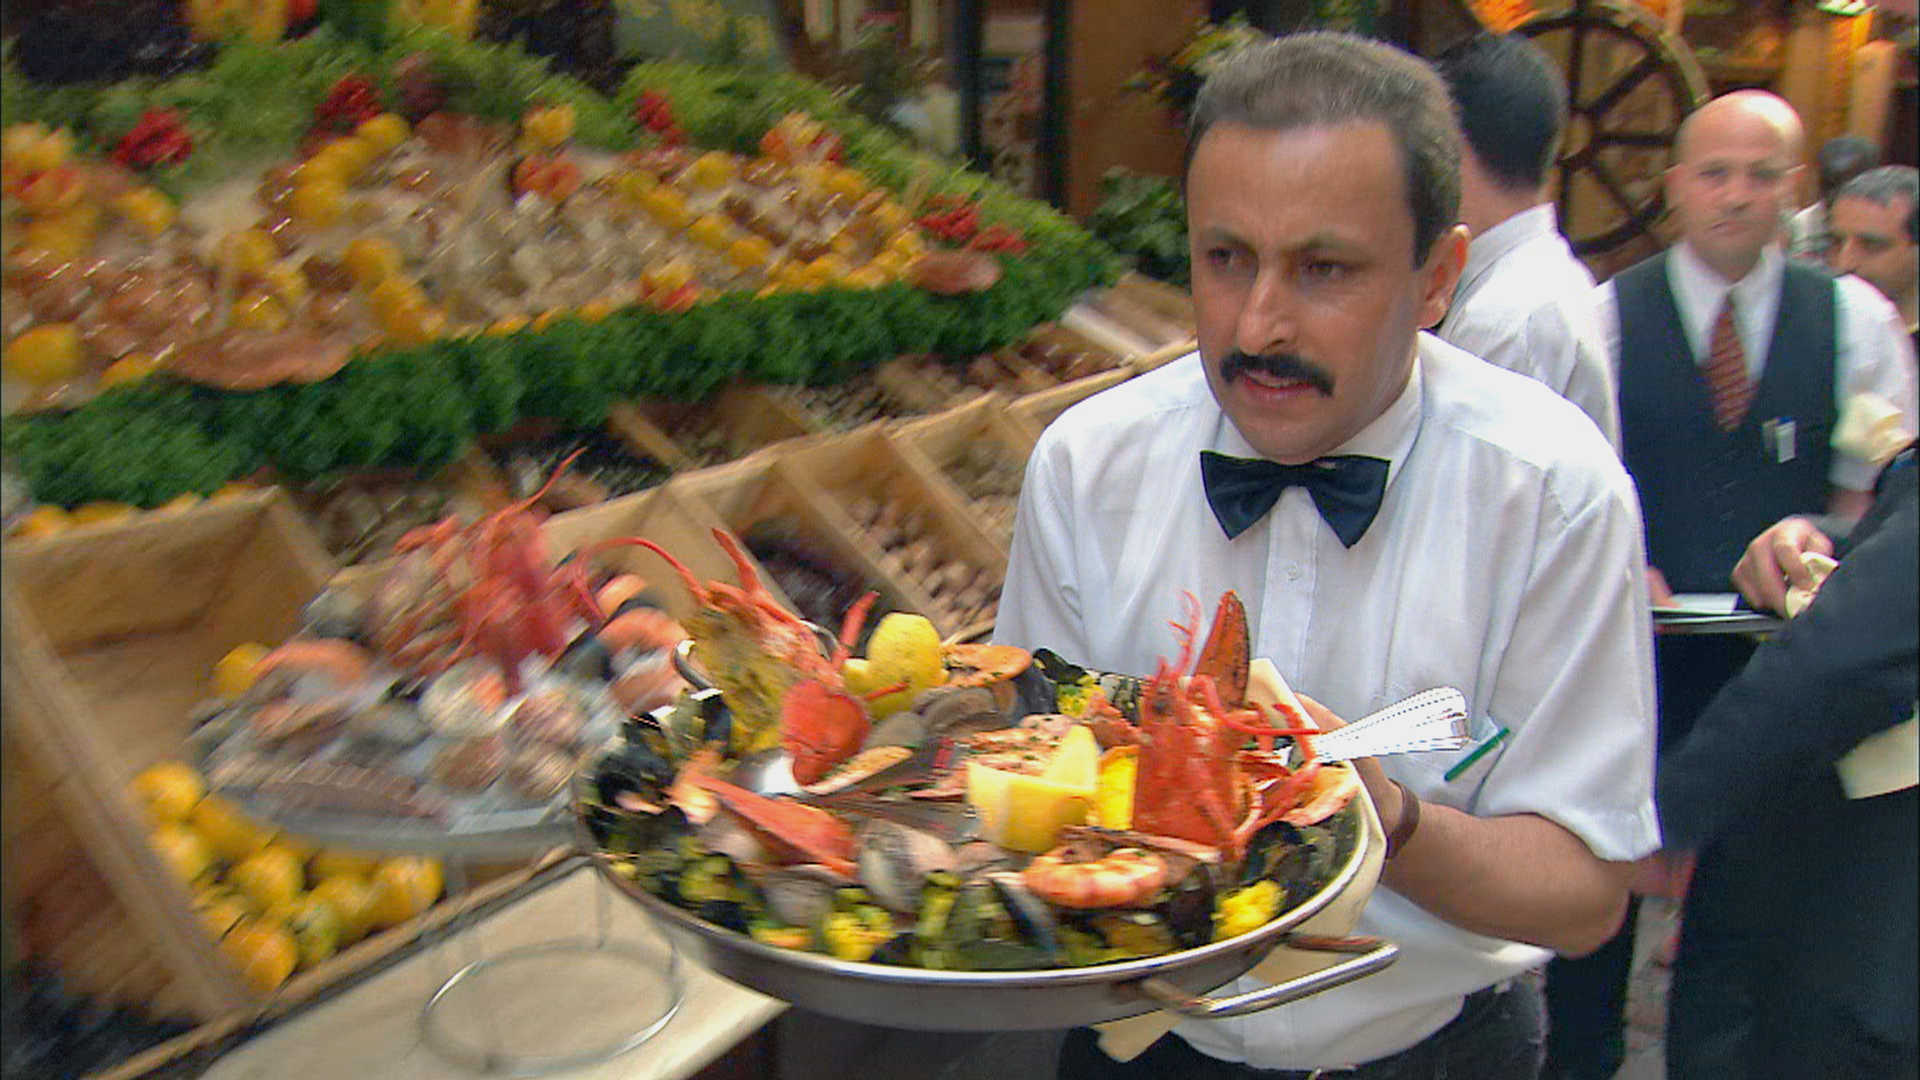 A waiter moves quickly with a plate of hot seafood